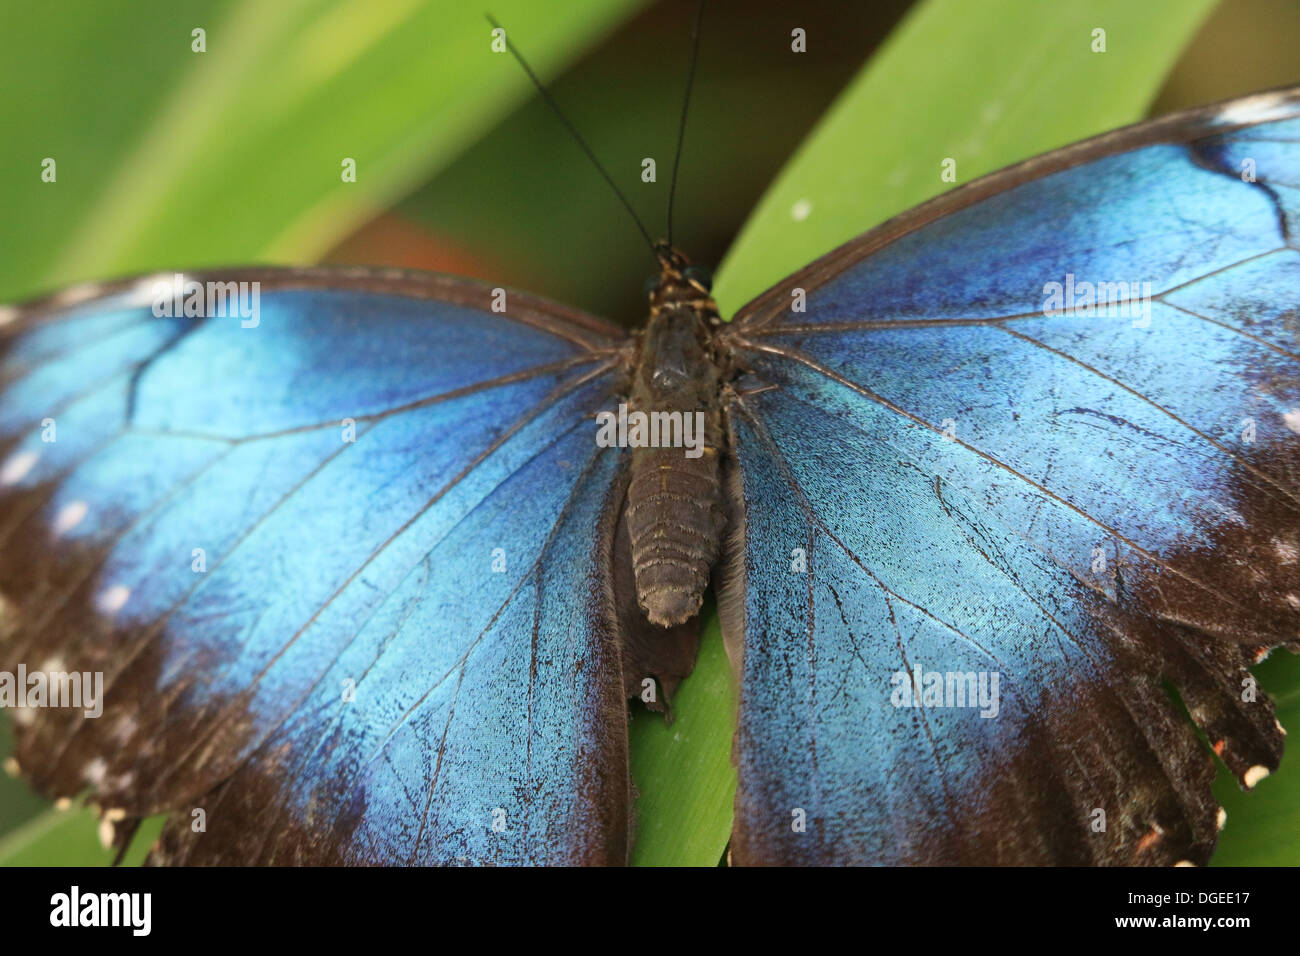 Blue Morpho (Morpho peleides) also known as Emperor Butterfly showing blue inner wings Stock Photo